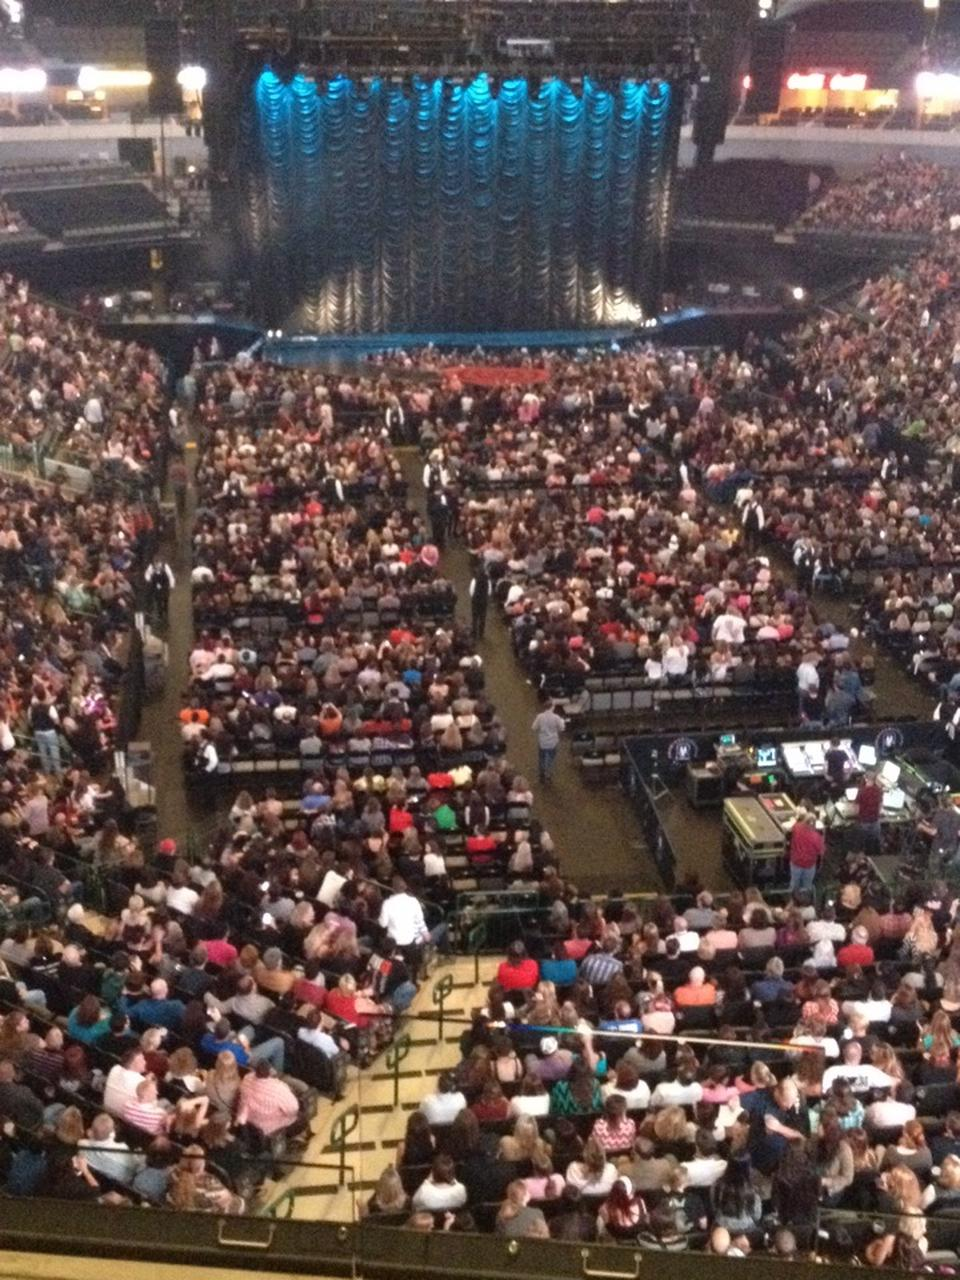 American Airlines Center Section 319 Concert Seating